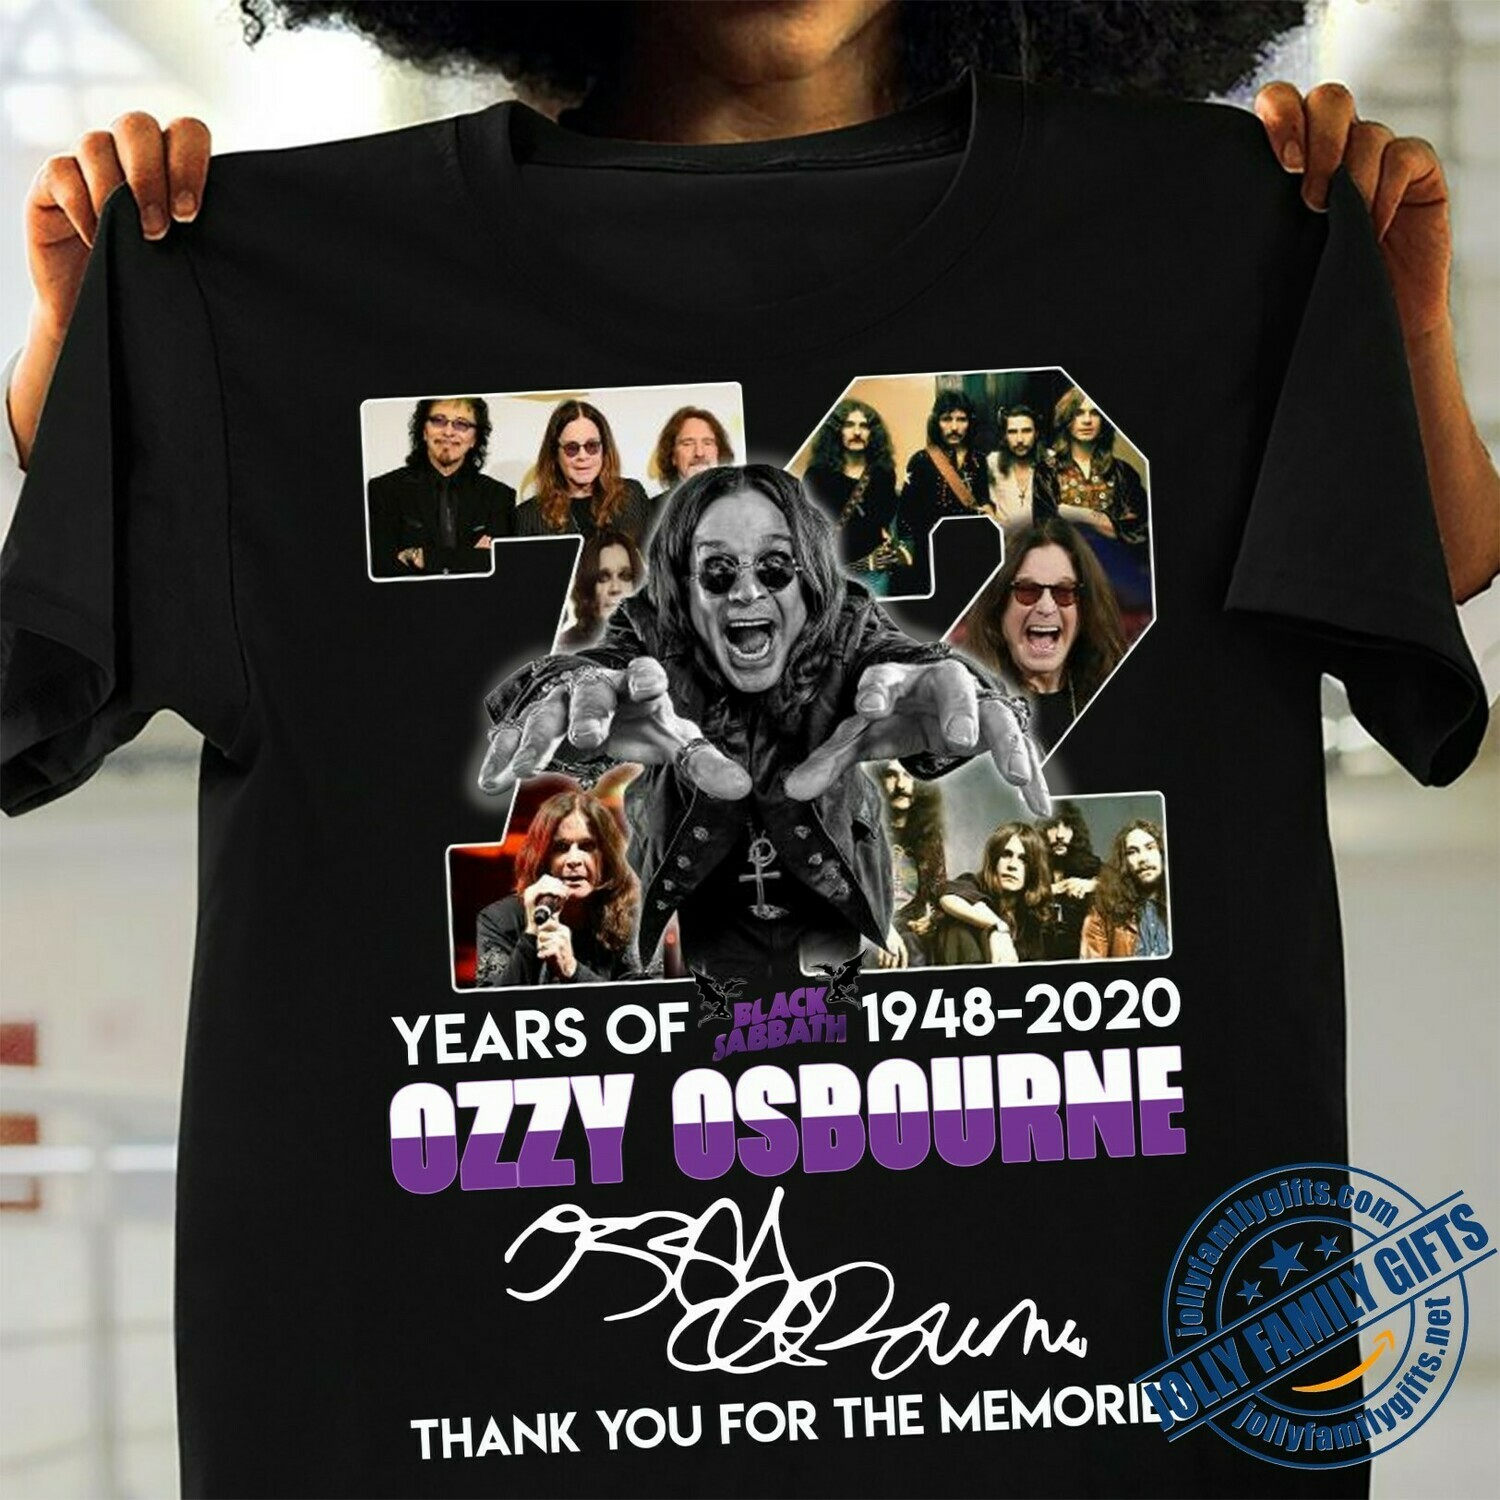 72 years of Black Sabbath 1948 2020 Ozzy Osbourne thank you for the memories signature for men women Unisex T-Shirt Hoodie Sweatshirt Sweater Plus Size for Ladies Women Men Kids Youth Gifts Tee Jolly